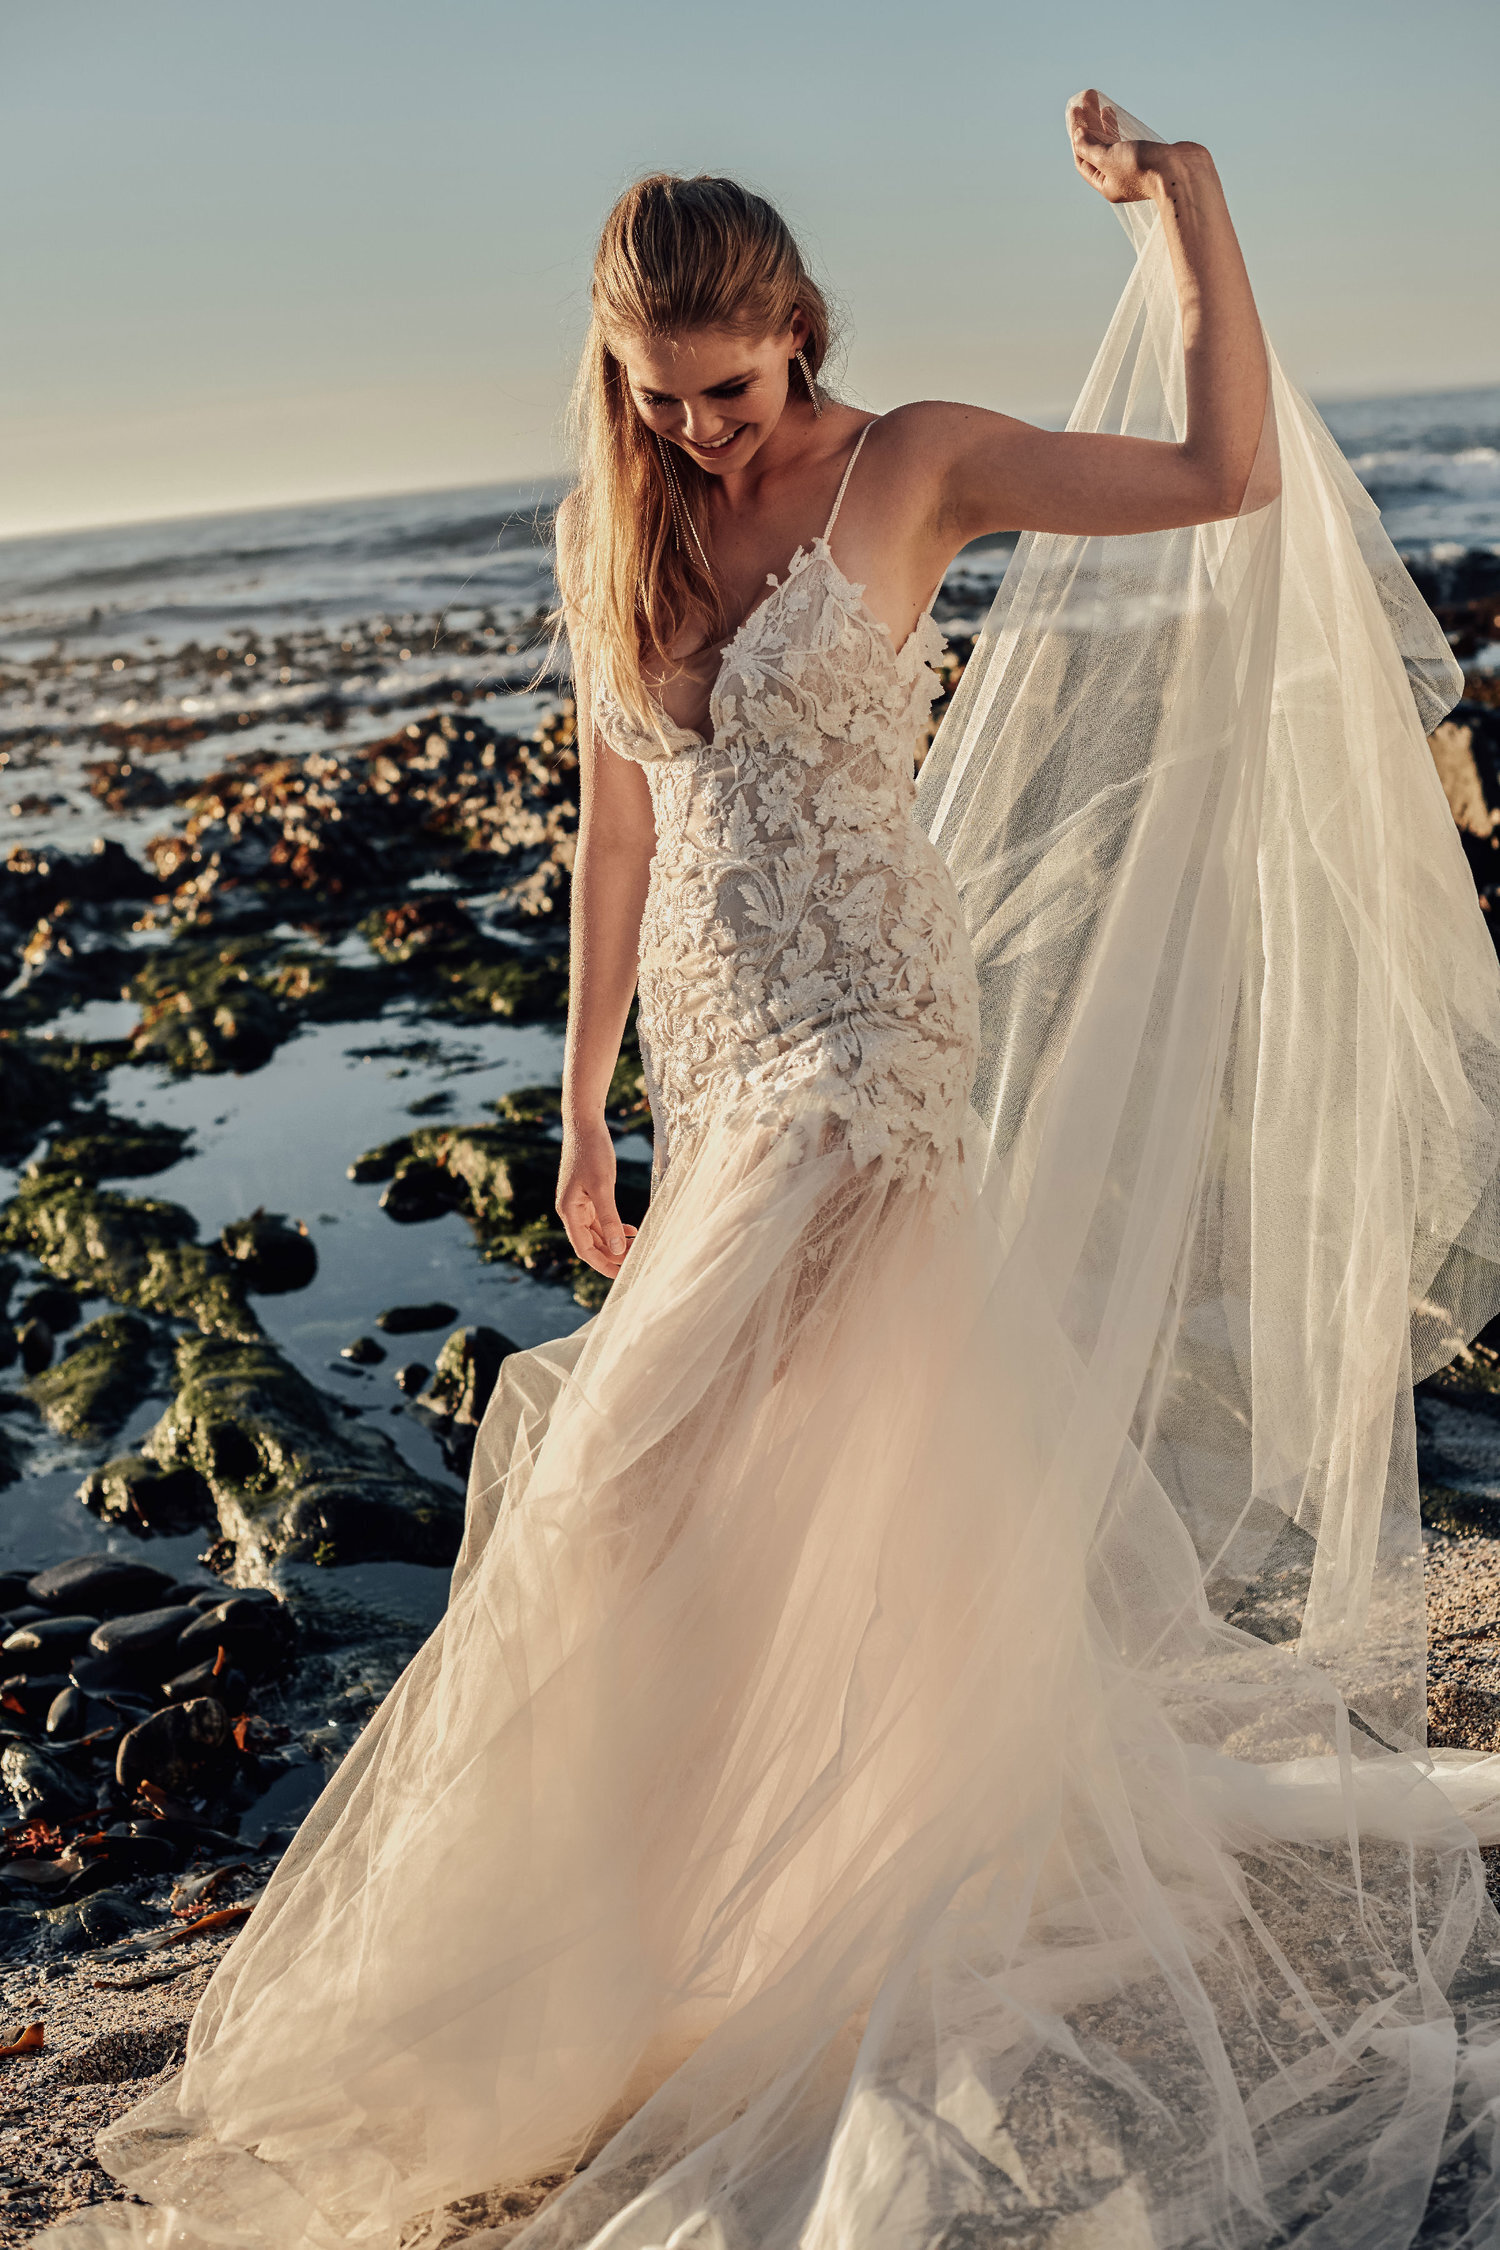 HEUCHERA - The Heuchera Gown our modern take on Art Nouveau, with beaded lace meticulously placed into a puzzle of floral grandeur. A deep plunge and low back flow into a mermaid style skirt and train, providing you with the perfect combination of a vintage and modern silhouette.